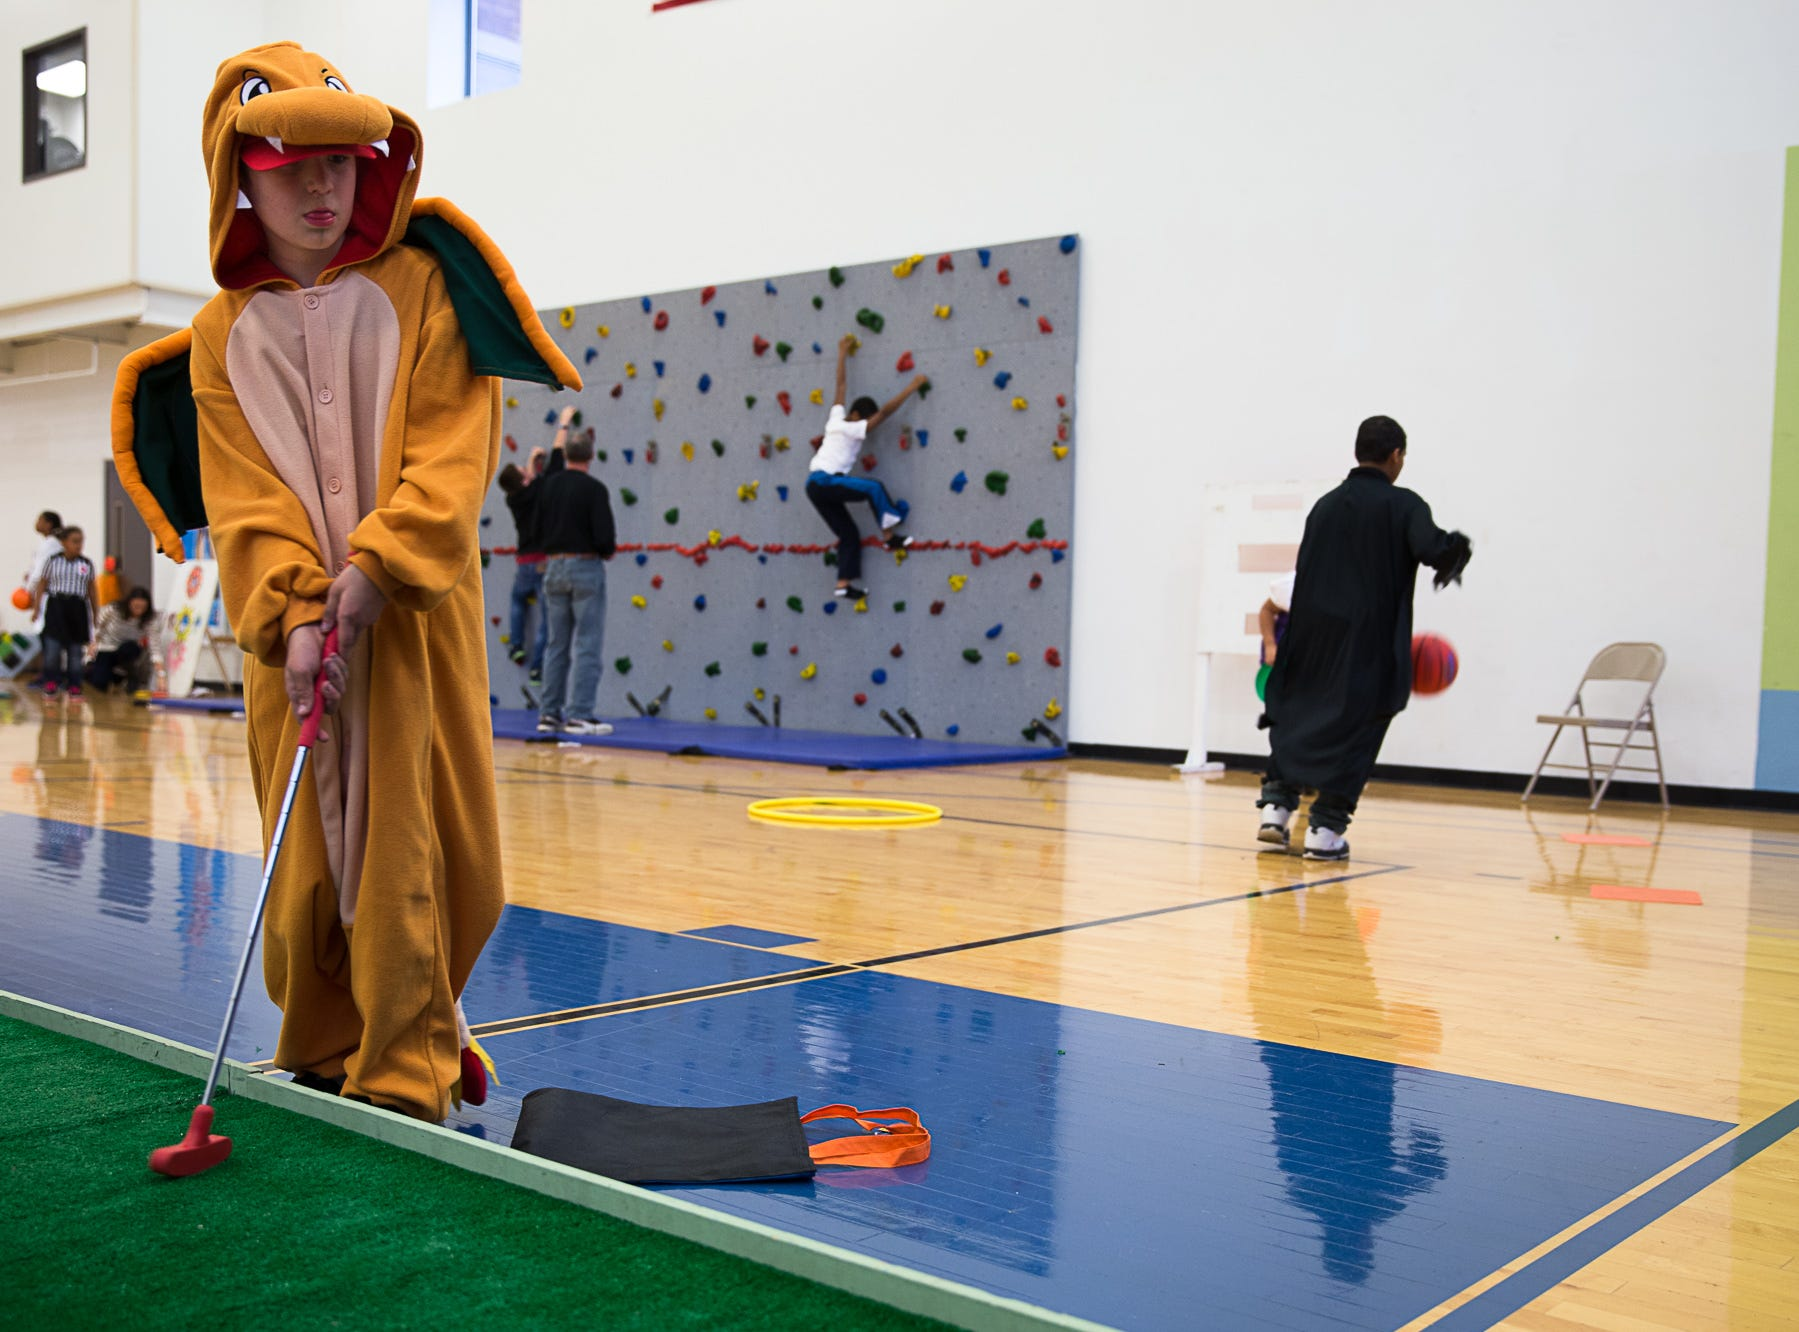 2013: Aidan Ehmke, age 9 of Binghamton, plays a golf game to earn tickets for candy and toys.  The Boys and Girls Club hosts a night of Halloween activities for children, including games, candy, food and a haunted house.